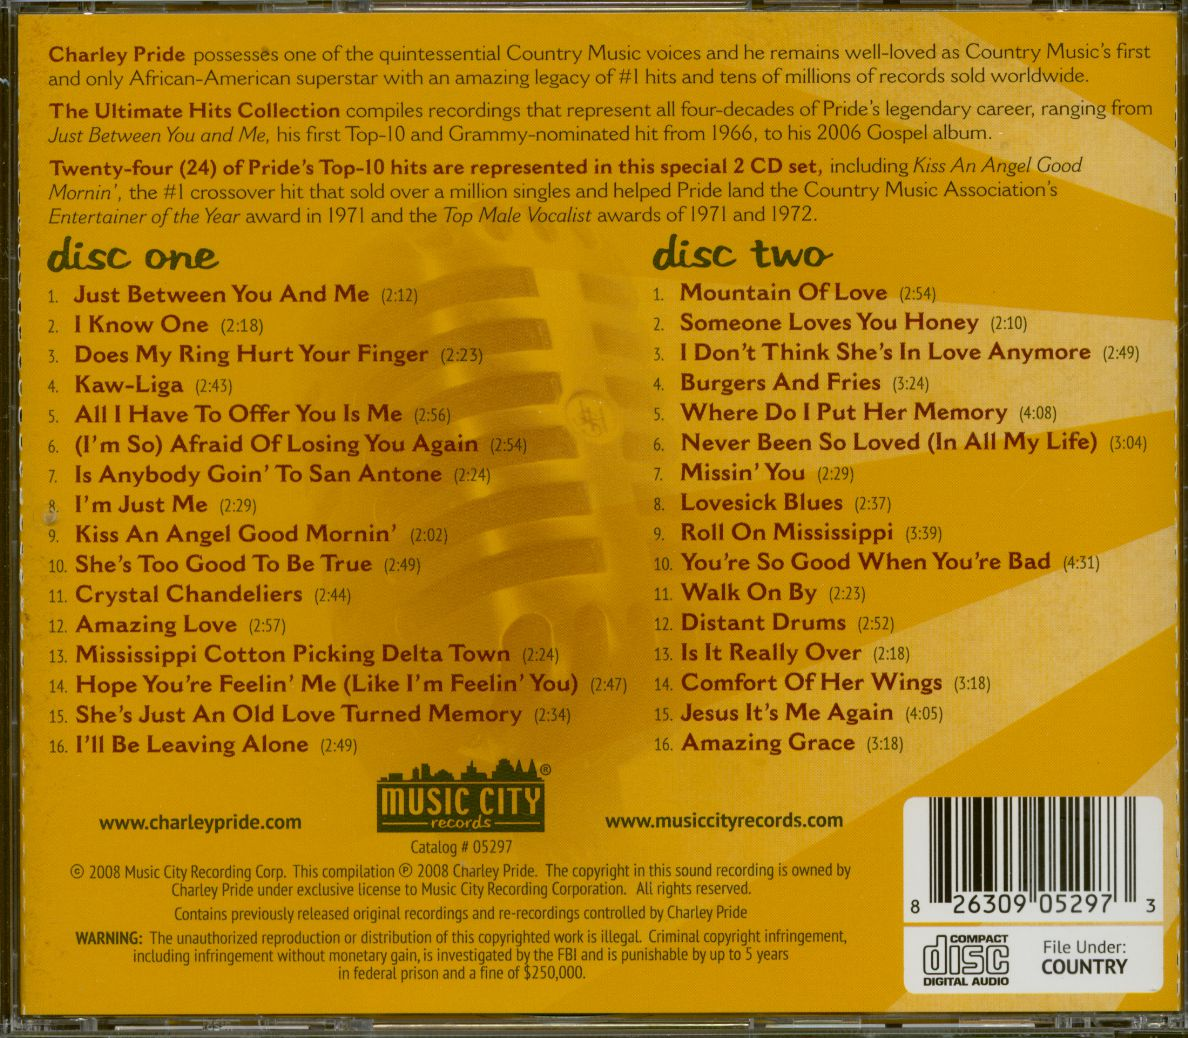 Charley Pride Cd The Ultimate Hits Collection 2 Cd